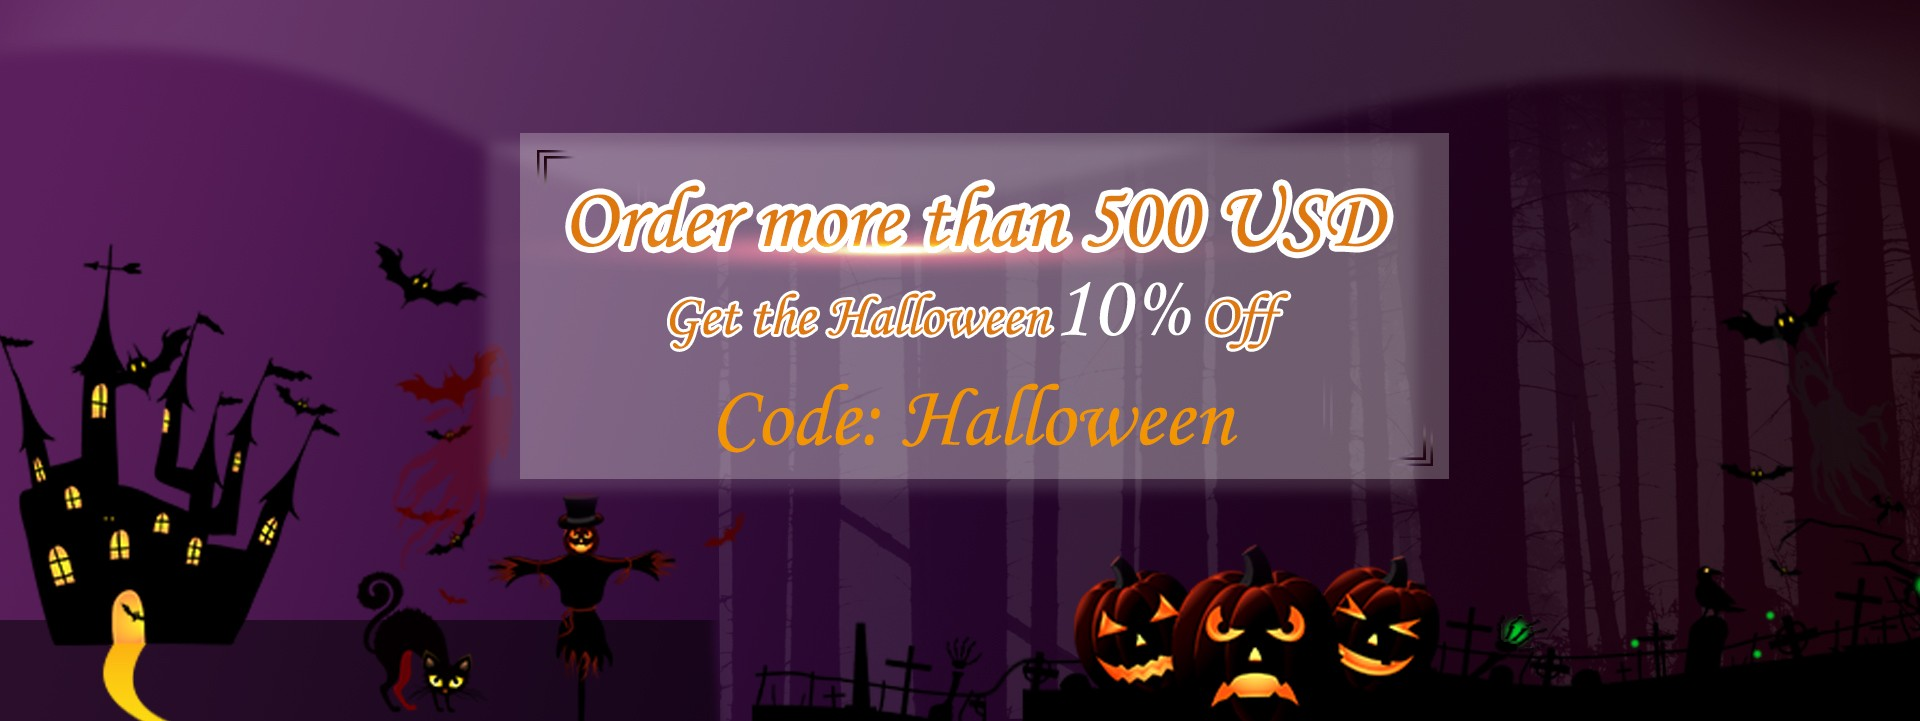 Halloween Big Promotion